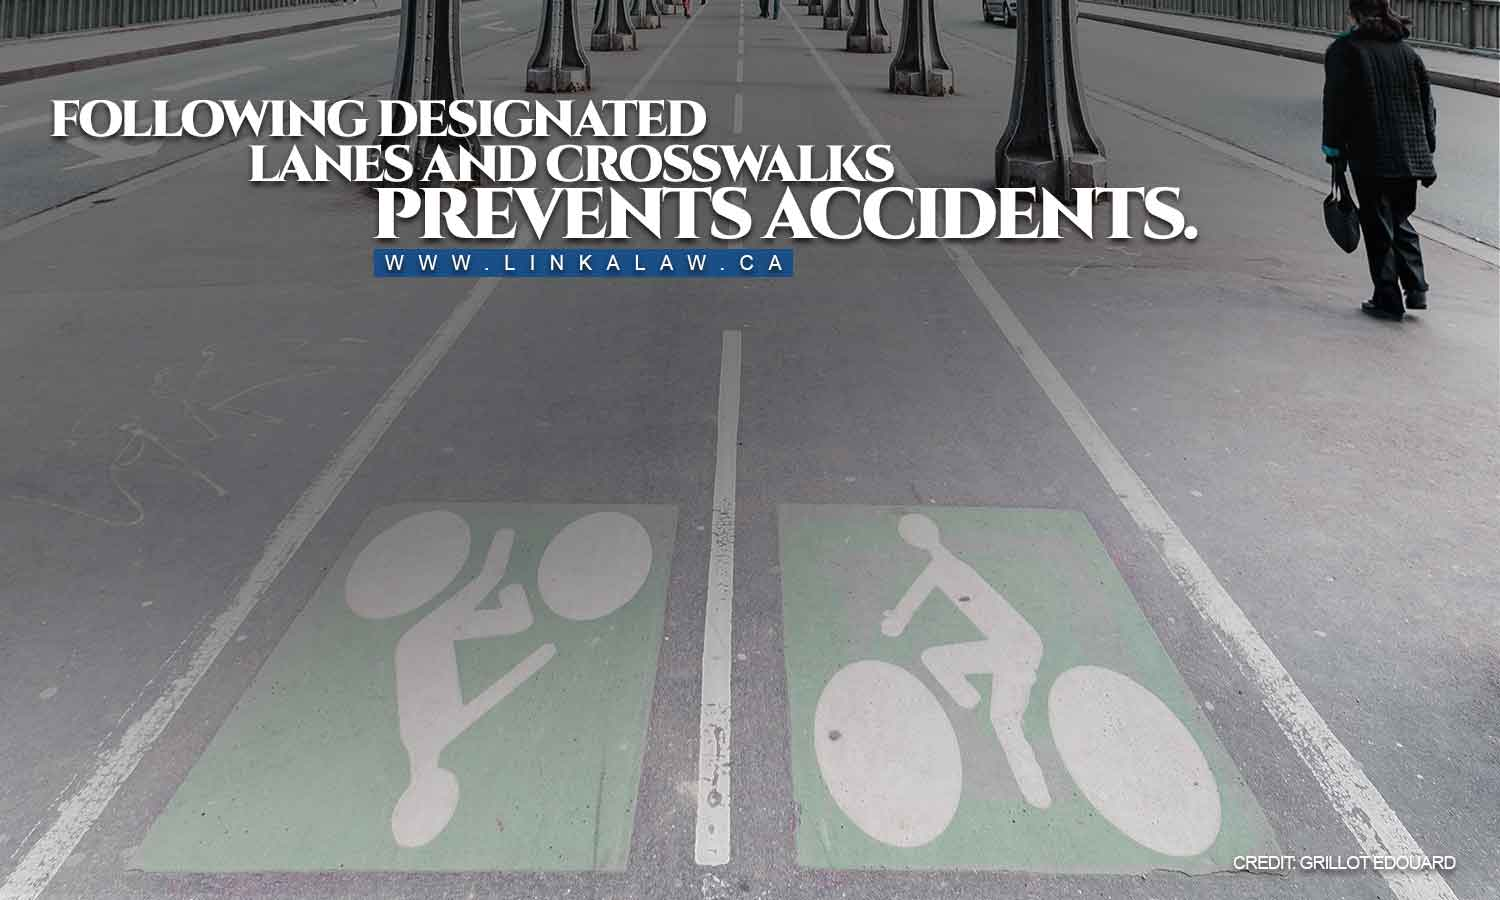 Following designated lanes and crosswalks prevents accidents.